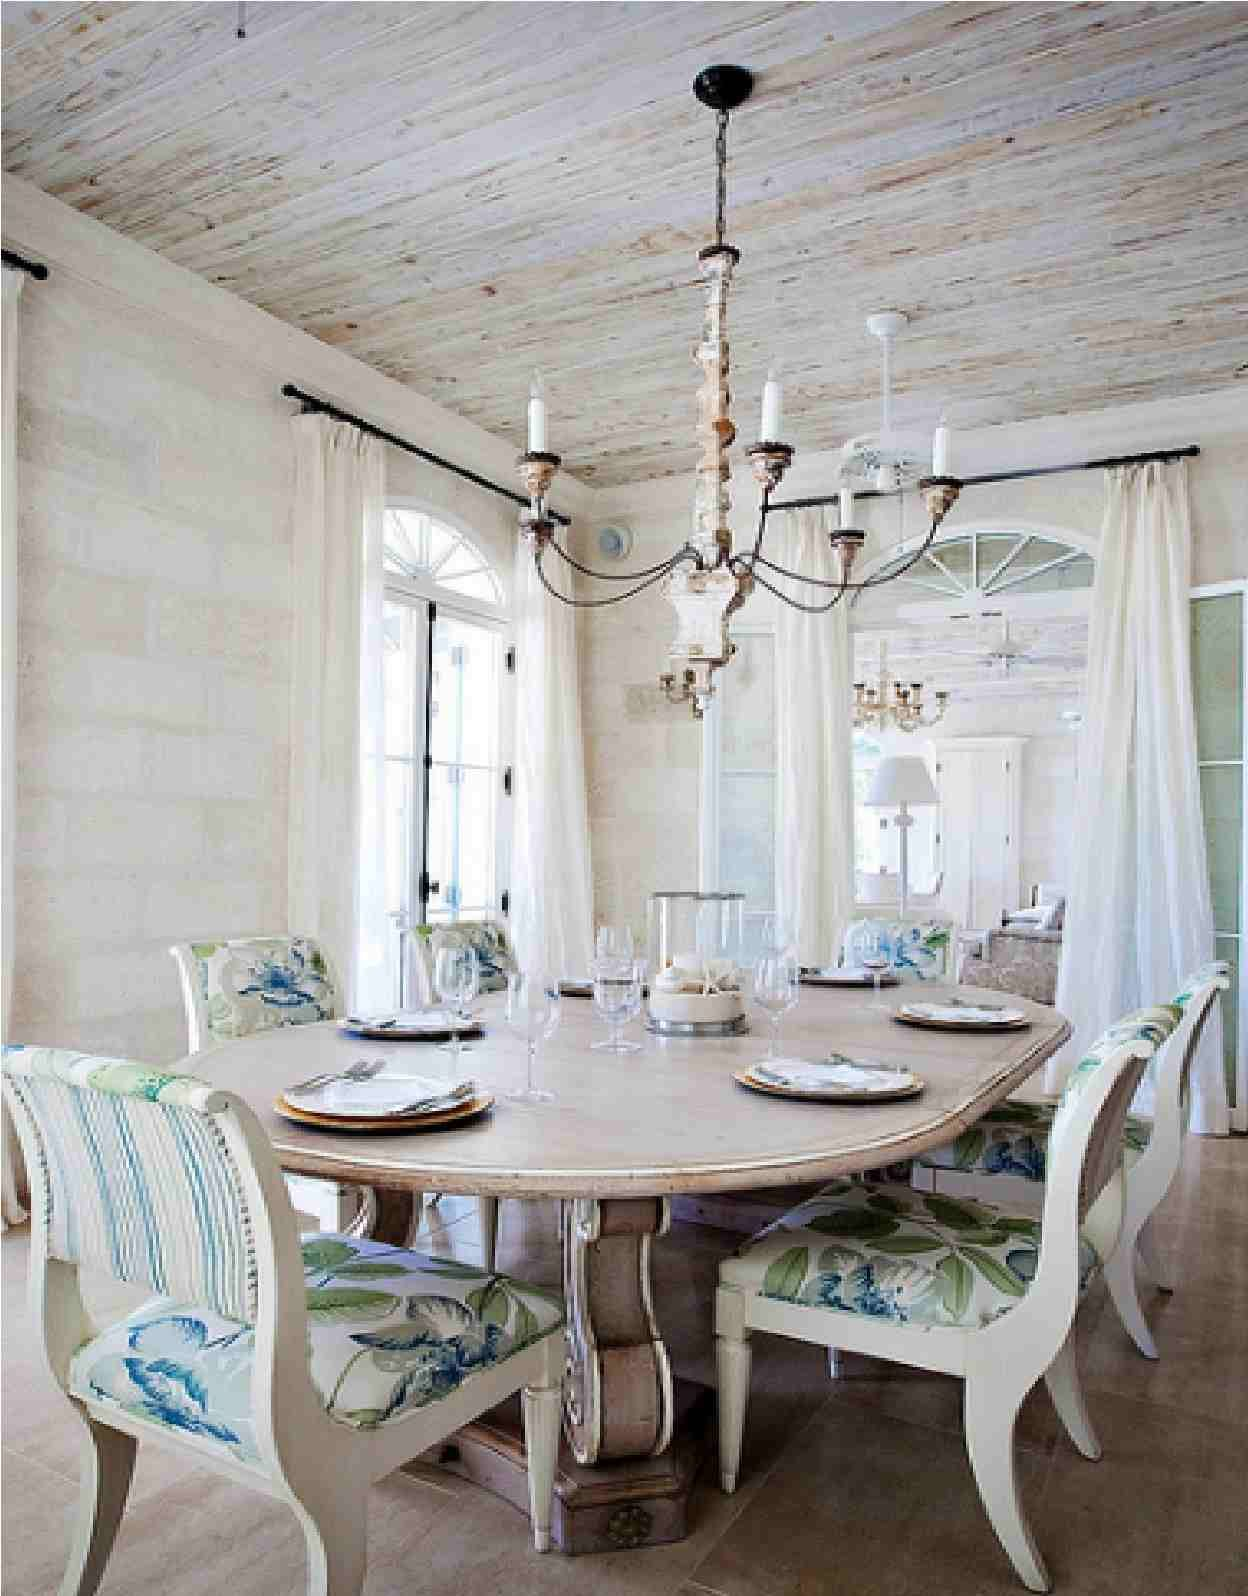 Rustic Elegant Interior Decorating  Exclusive Decor Rustic Mesmerizing Chic Dining Room Sets Design Inspiration